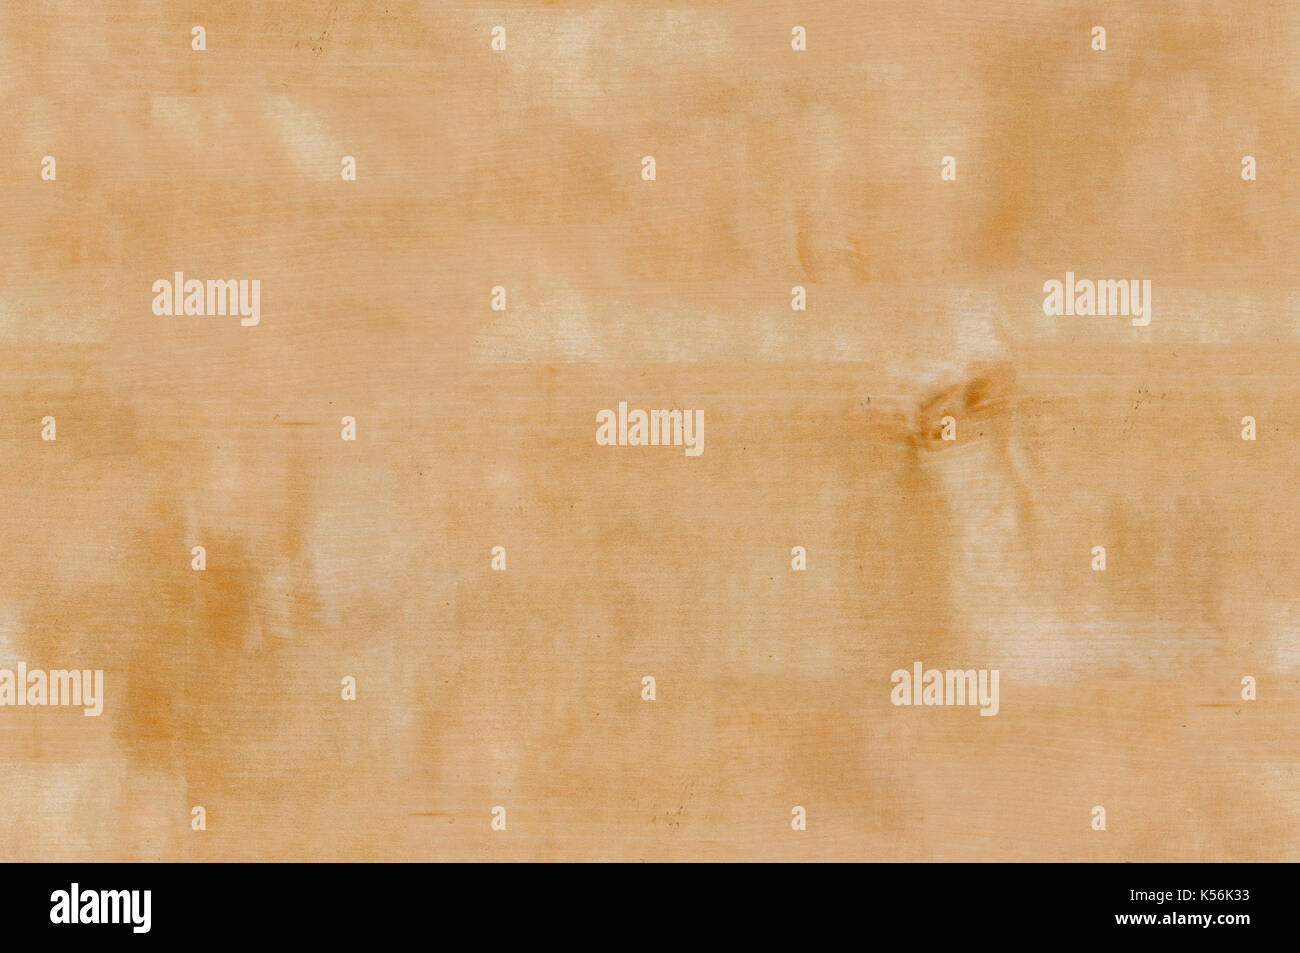 Seamless natural wood texture - Stock Image